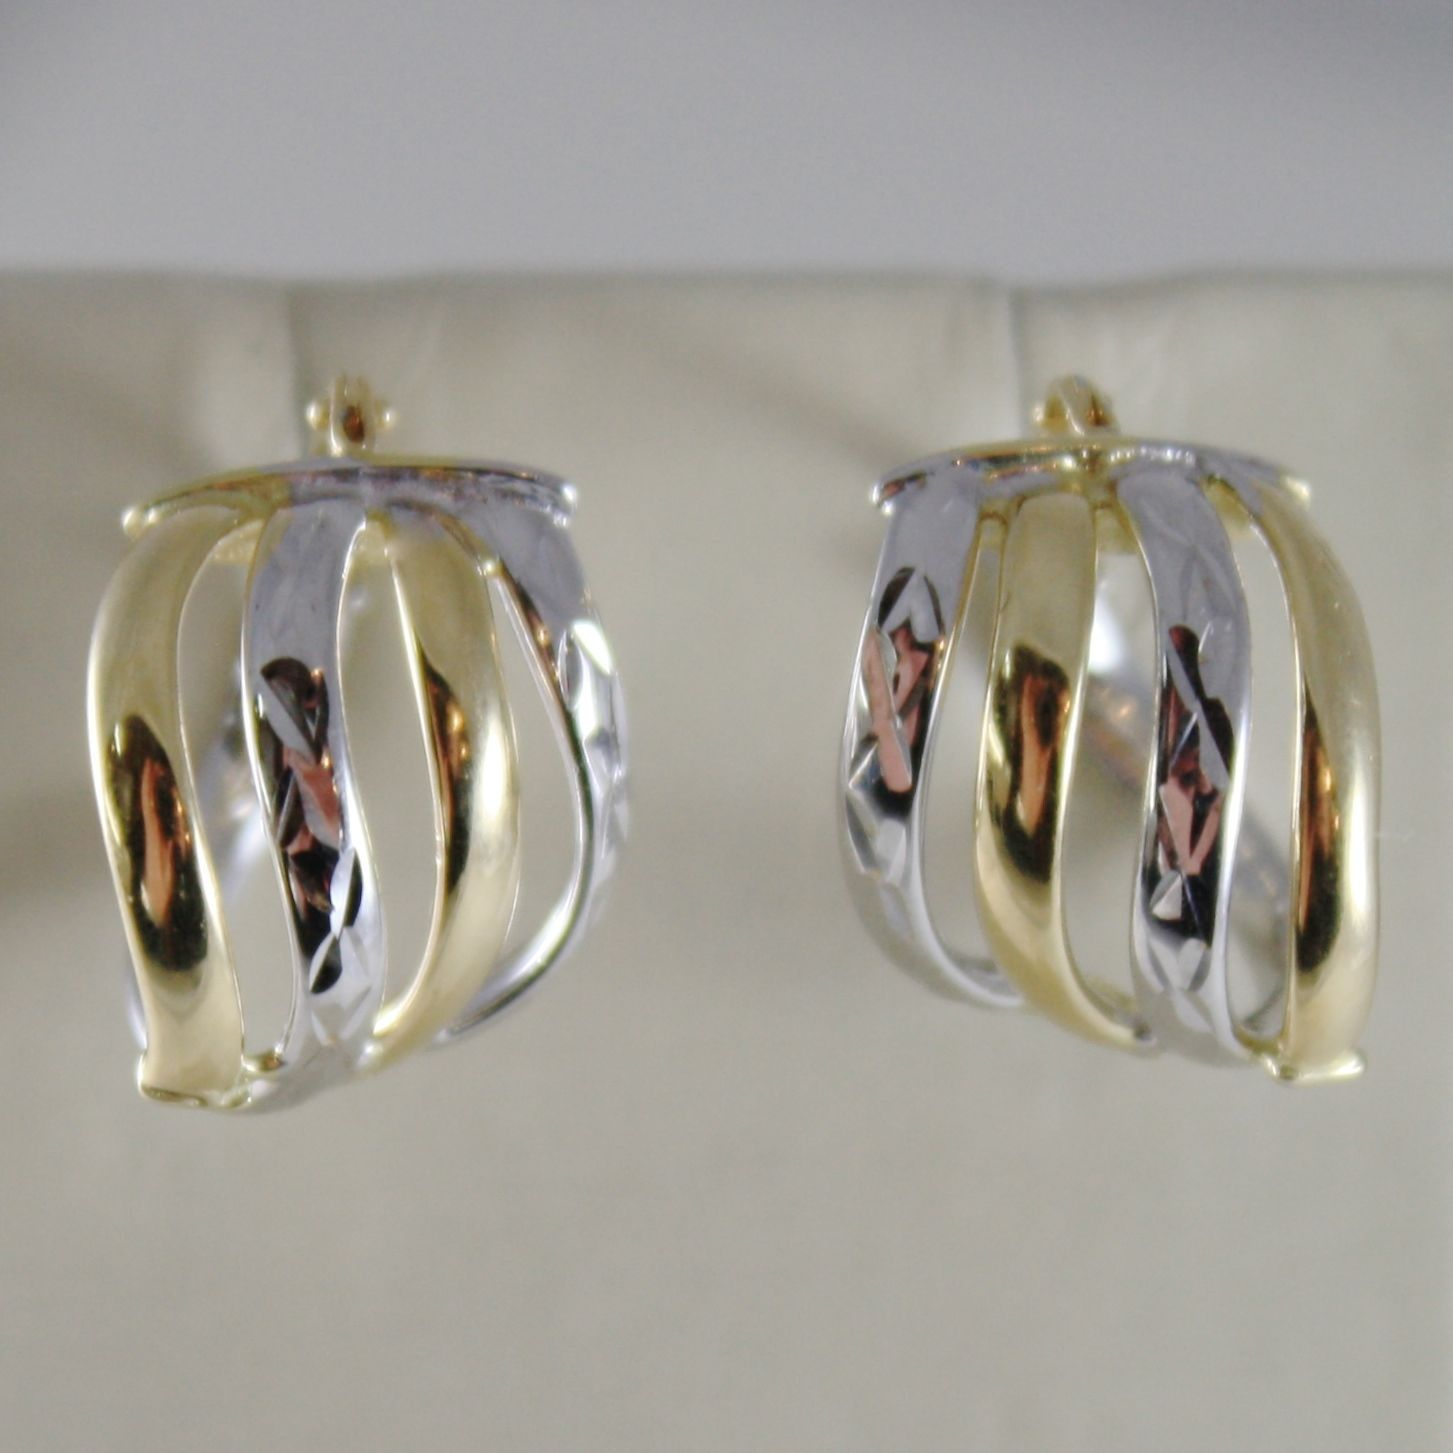 18K YELLOW WHITE GOLD EARRINGS ALTERNATE WORKED HOOPS HOOP 13 MM MADE IN ITALY